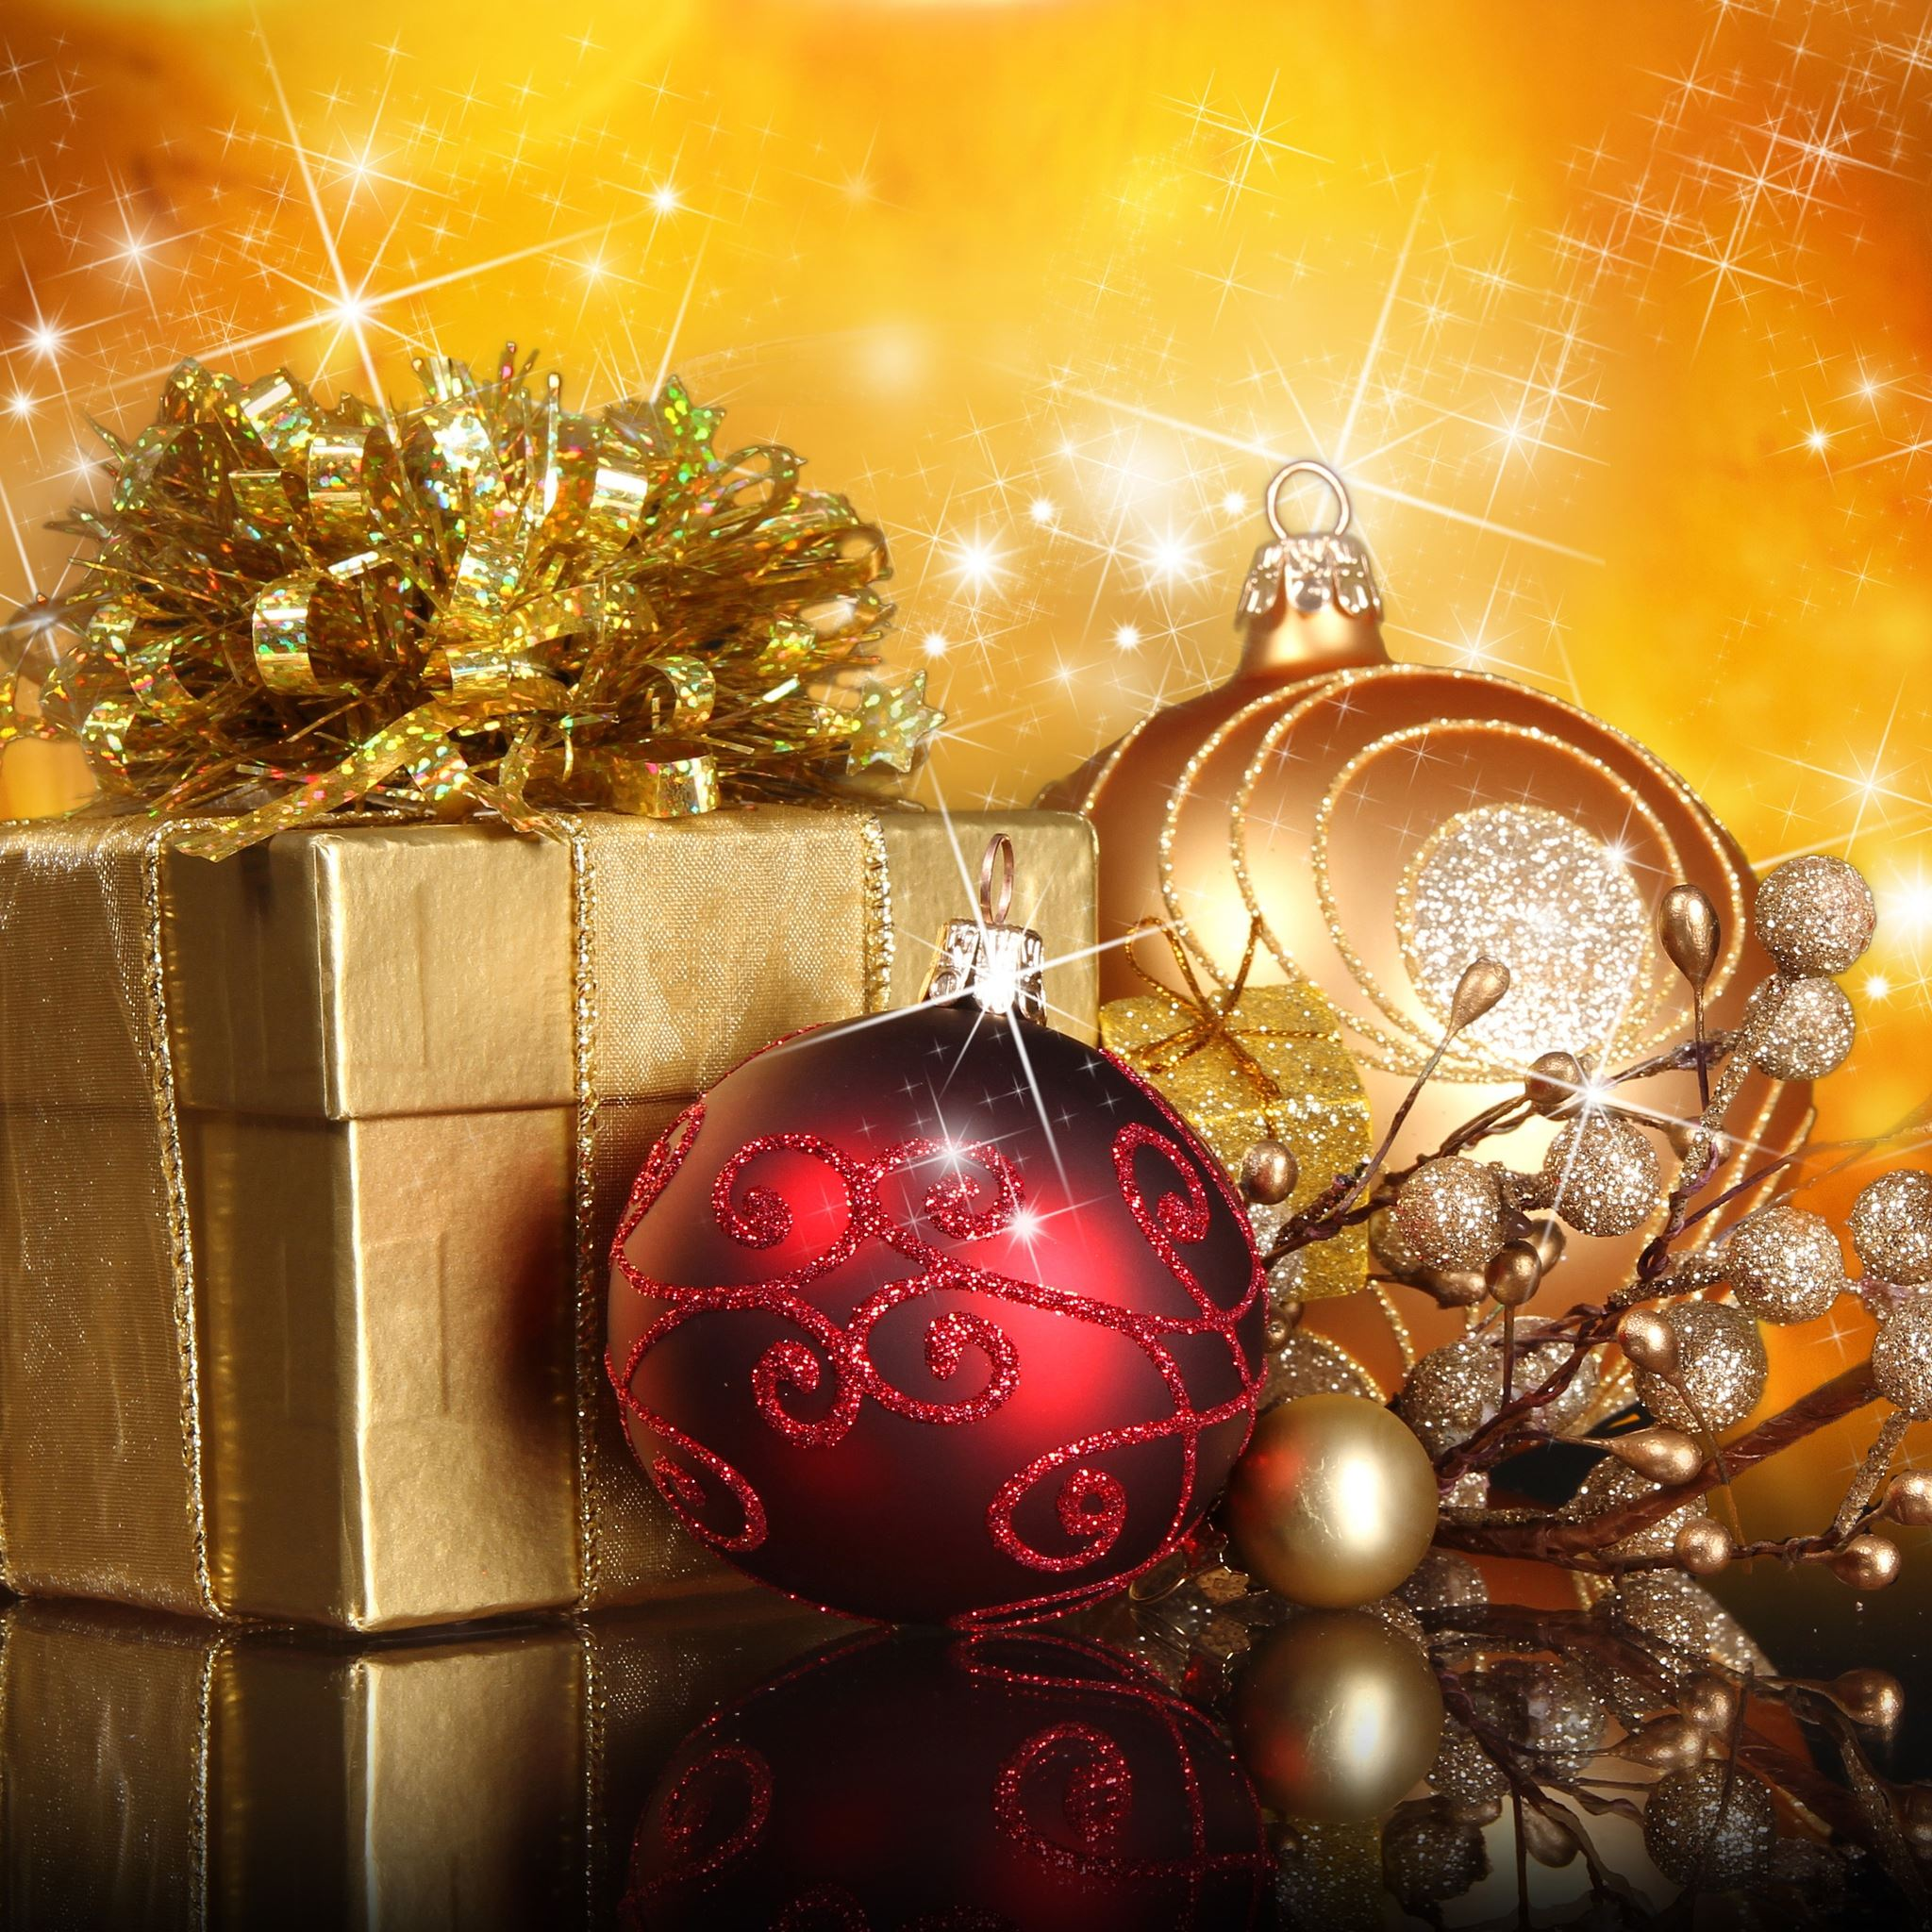 Christmas Gifts And Globes IPad Air Wallpapers Free Download